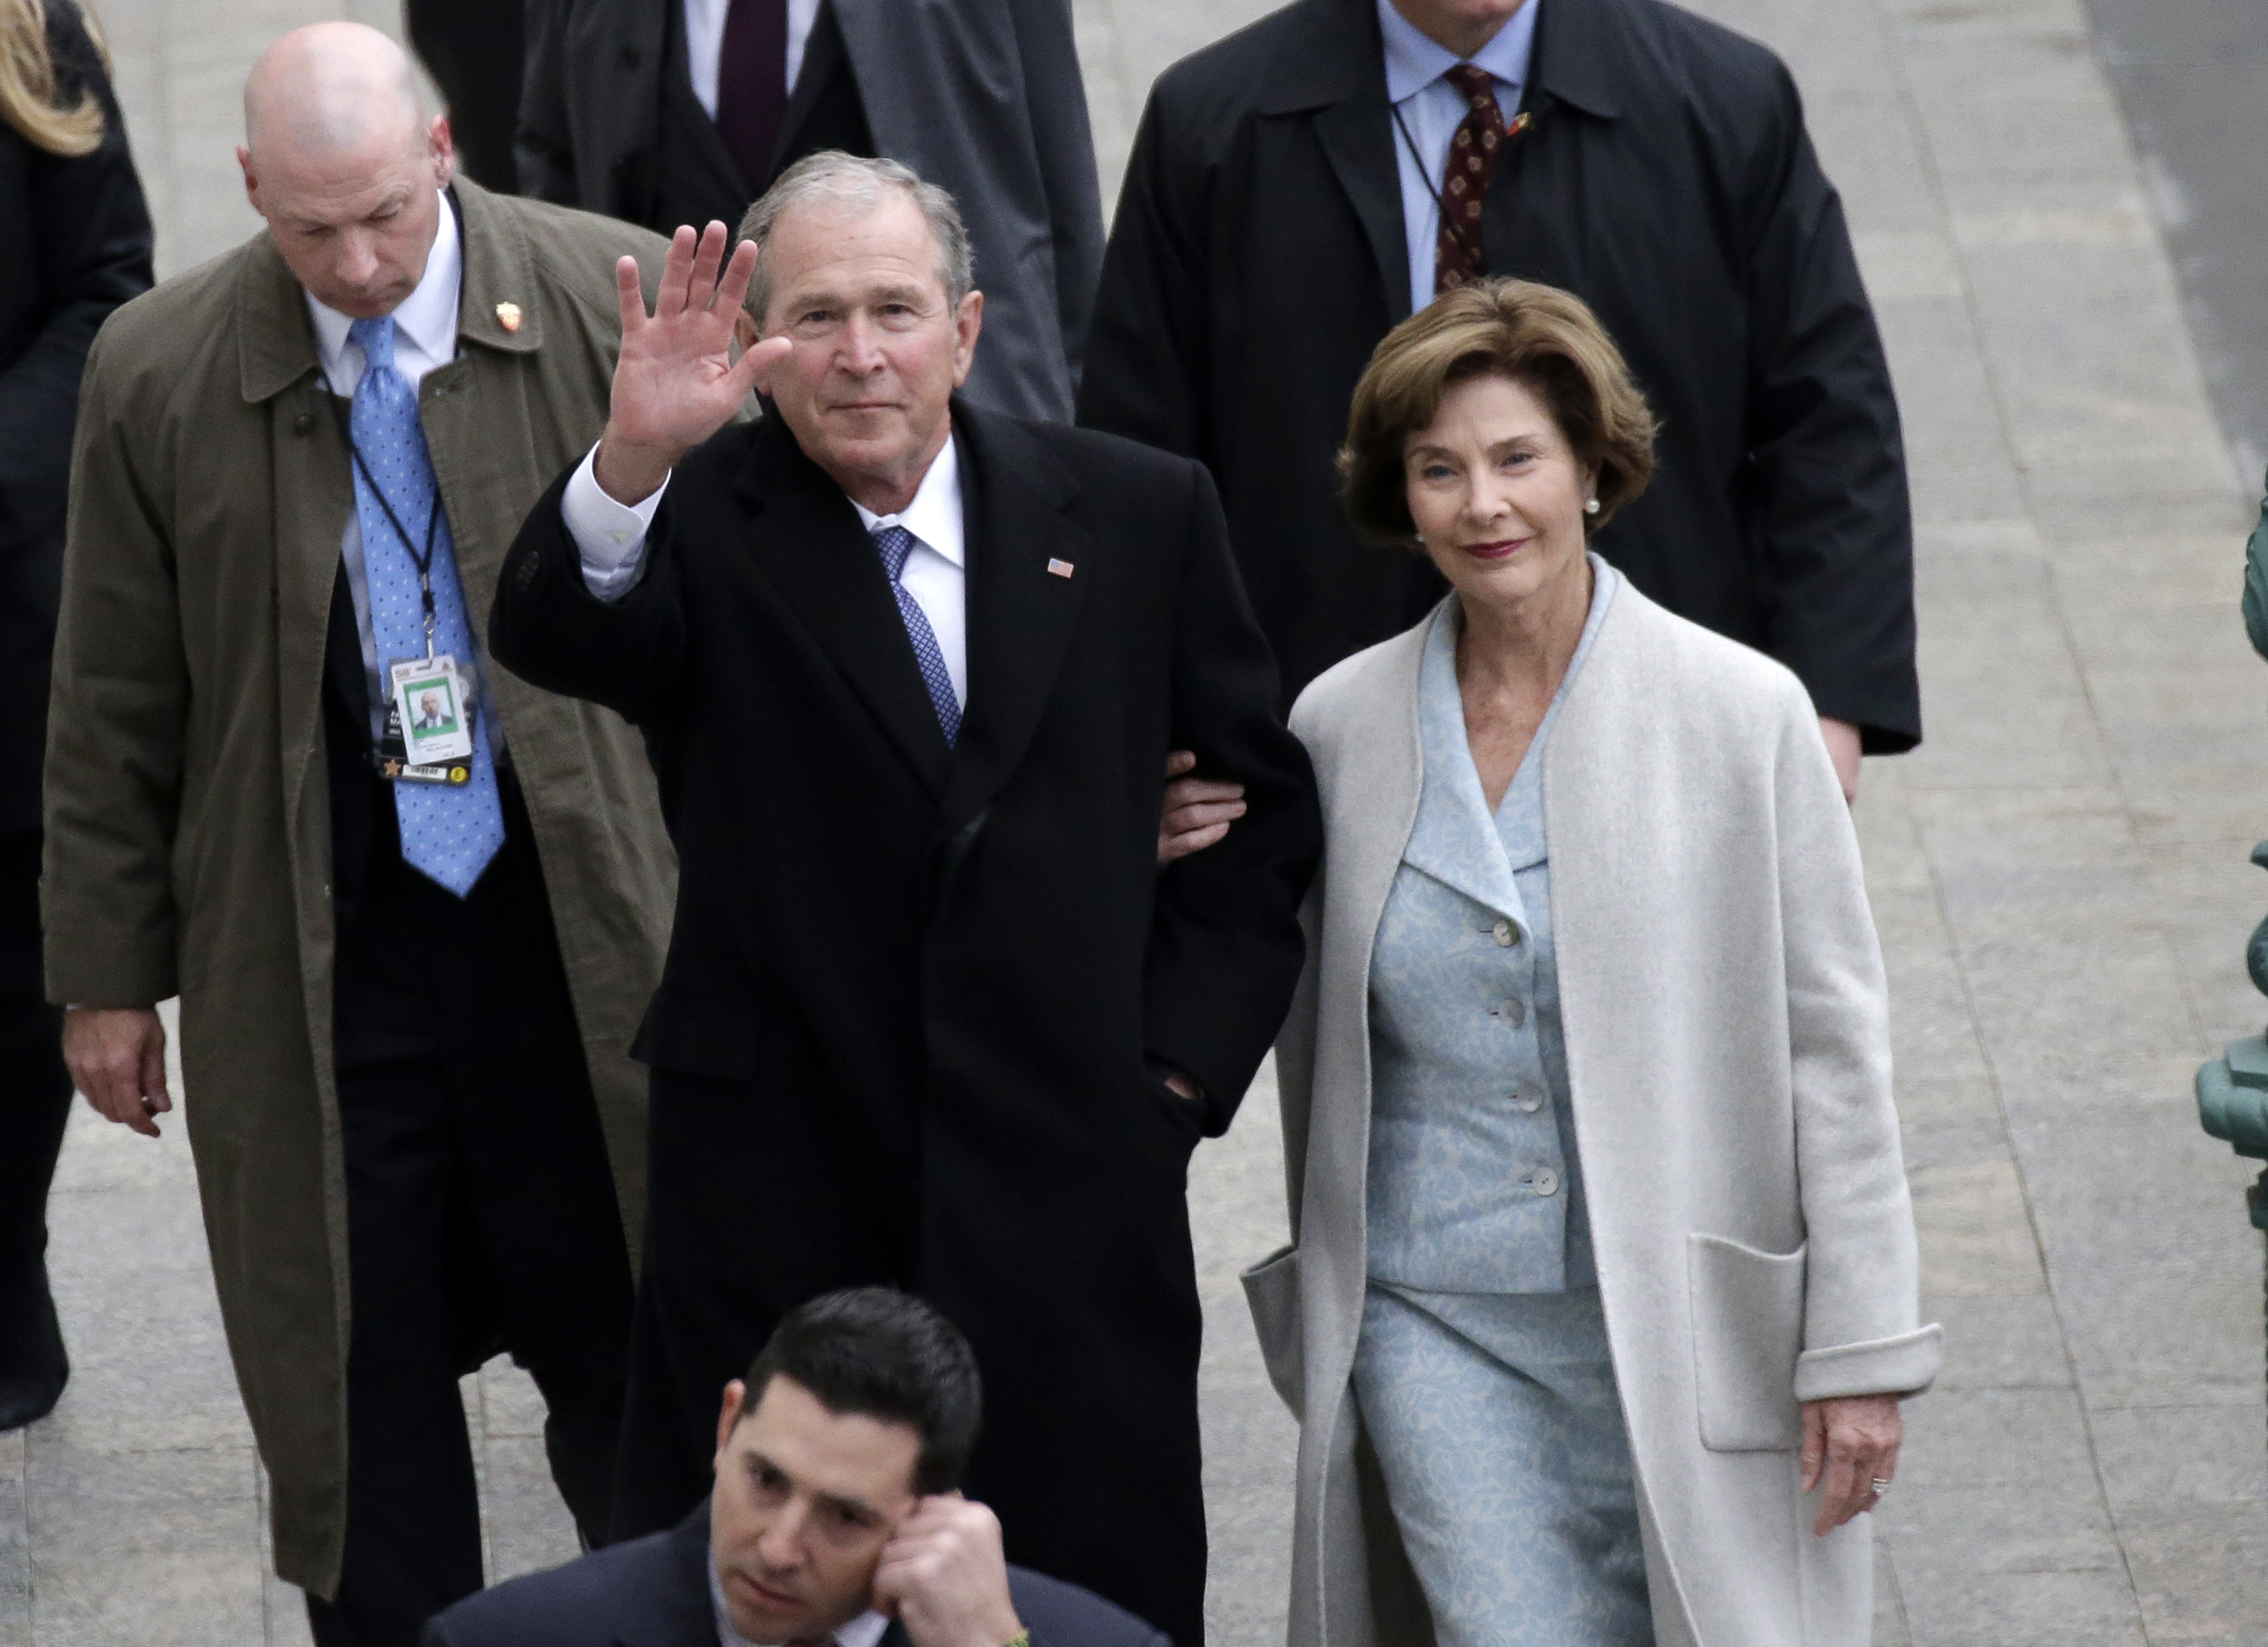 <div class='meta'><div class='origin-logo' data-origin='none'></div><span class='caption-text' data-credit='John Angelillo/Pool Photo via AP'>Former President George W. Bush and wife Laura Bush arrive near the east front steps of the Capitol Building before President-elect Donald Trump is sworn in.</span></div>